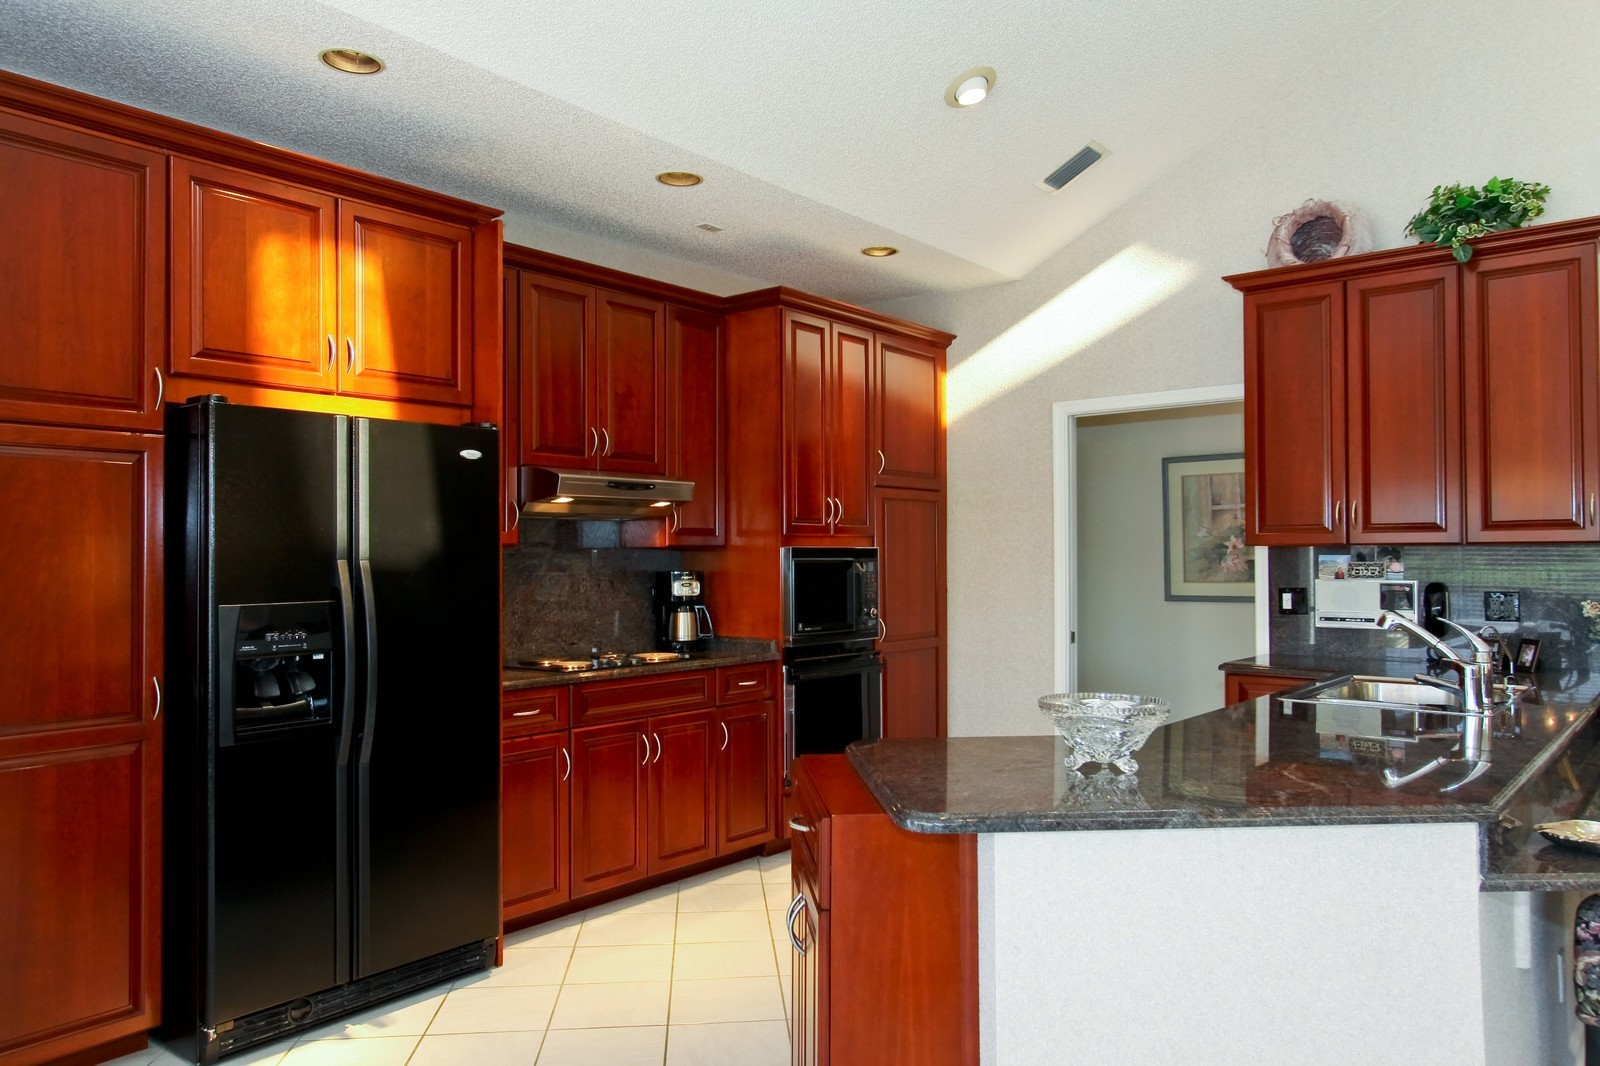 Real Estate Photography - 17799 Heather Ridge, Boca Raton, FL, 33498 - Kitchen